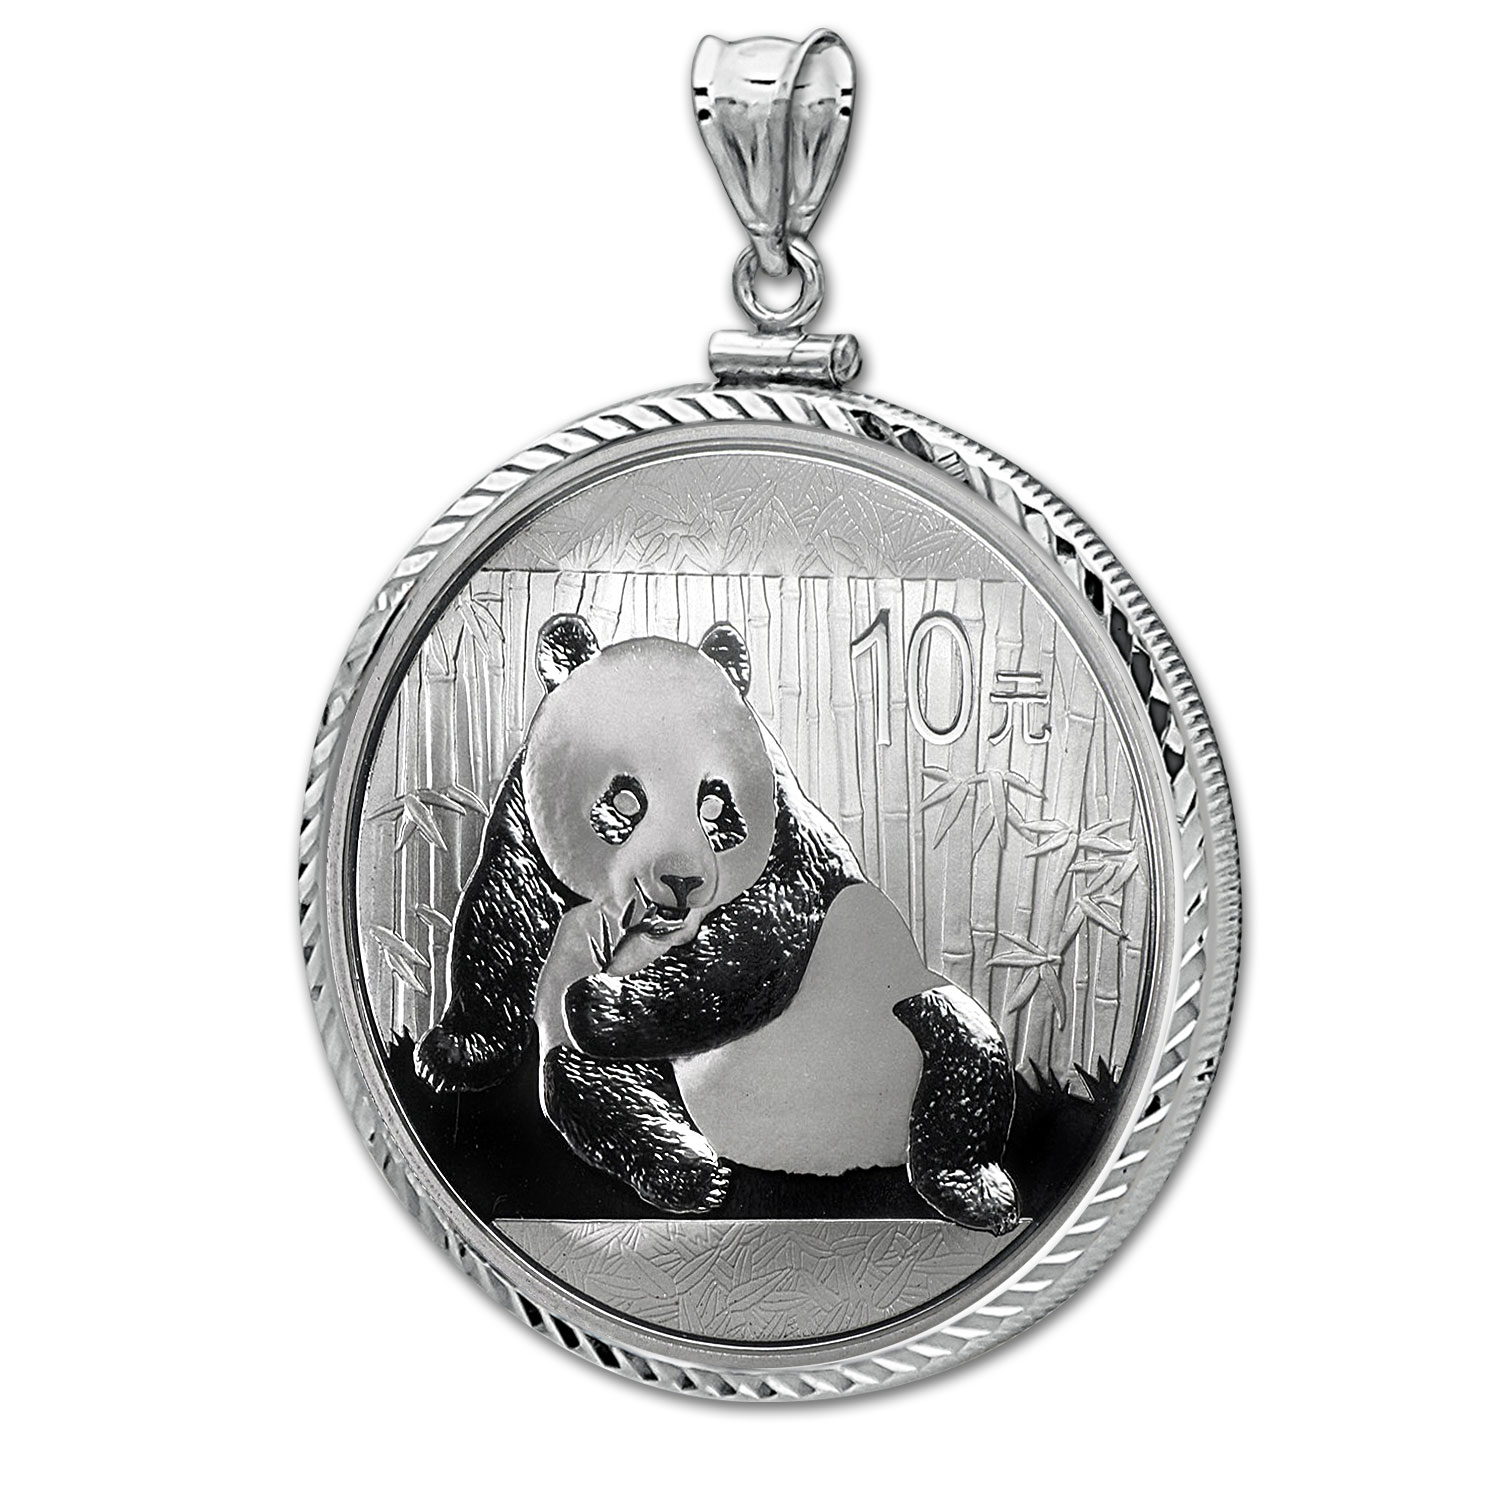 2015 1 oz Silver Panda Pendant (Diamond-ScrewTop Bezel)